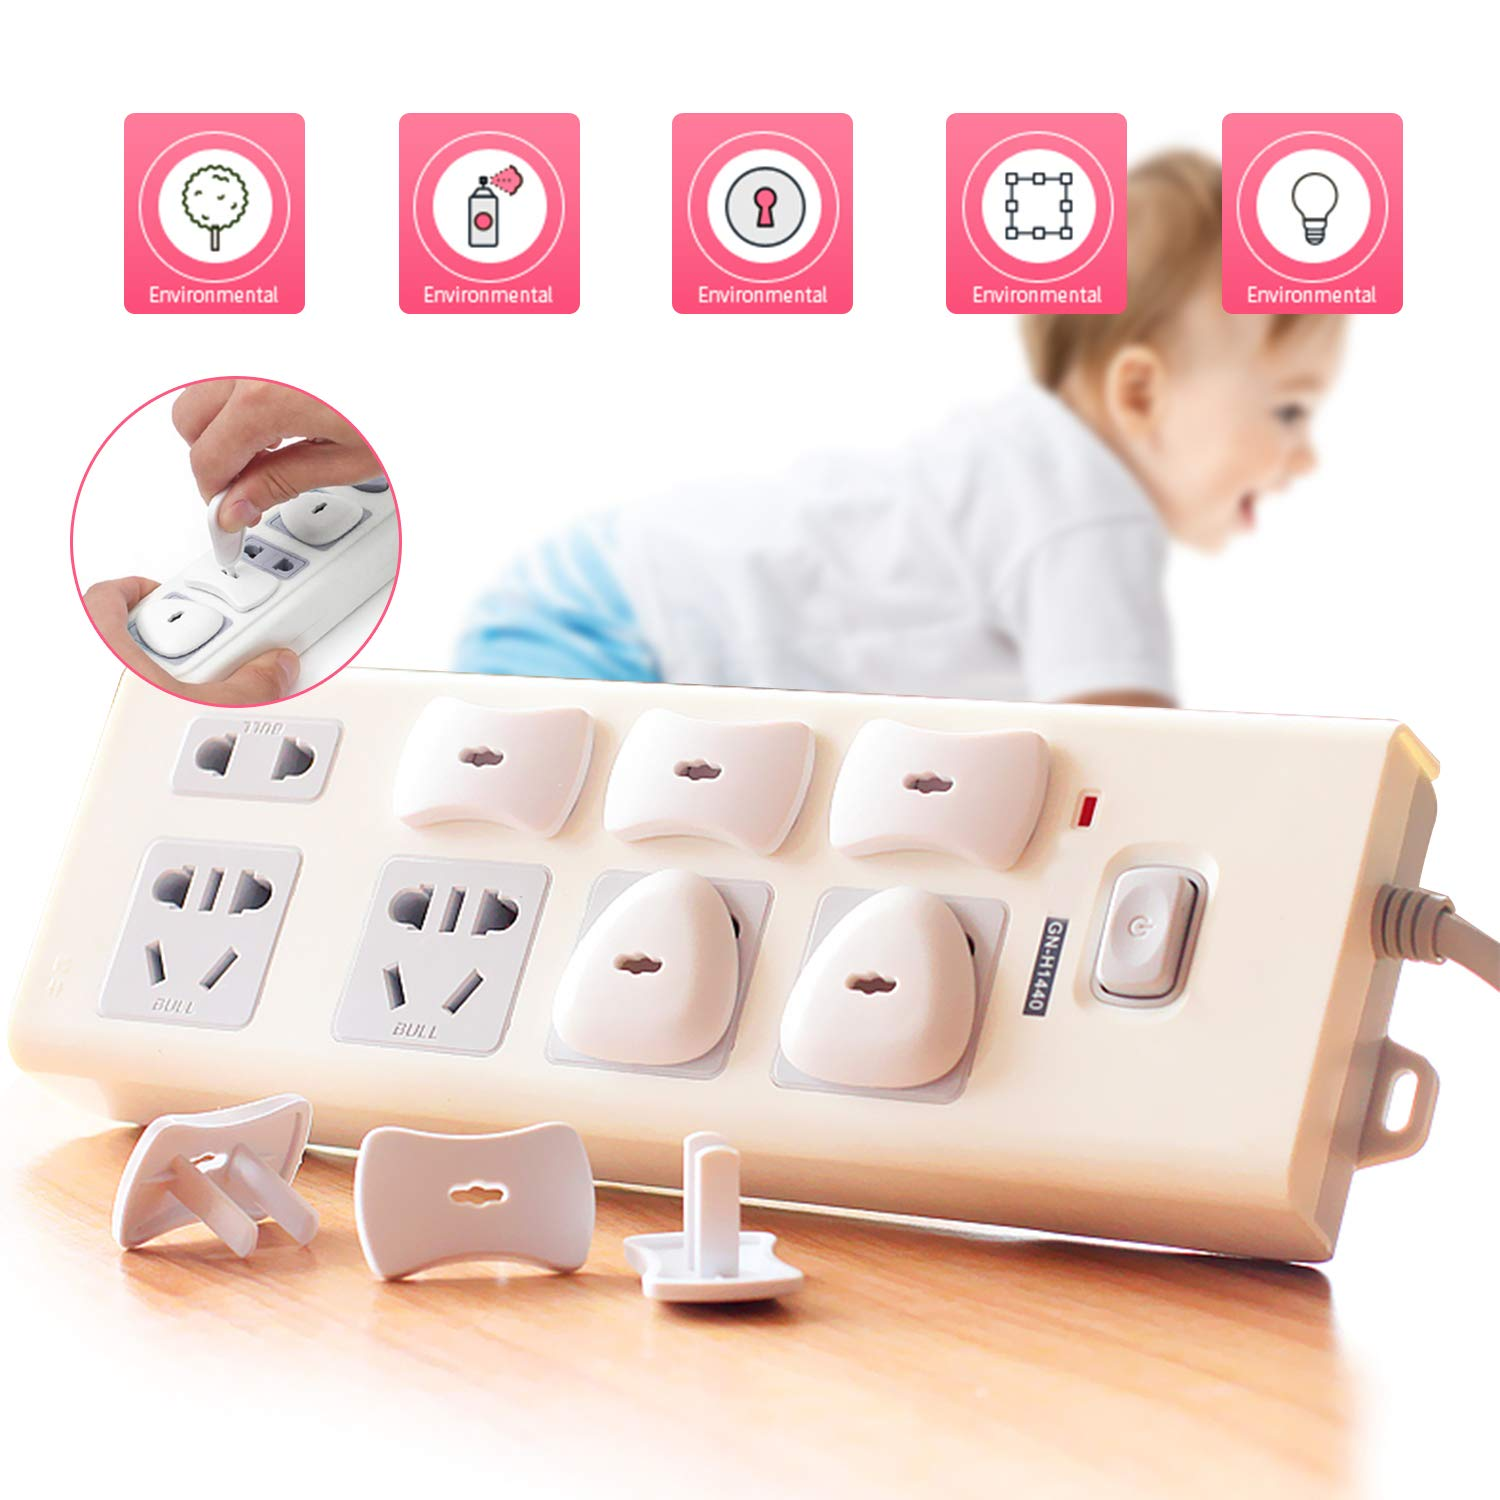 Baby Proofing, 44 PCS Magnetic Cabinet Locks Child Safety, 8 Cabinet Locks + 2 keys, 10 Corner Guards, 20 Outlet Plug Covers, with Strong 3M Adhesive Tape and Metal Screws by ARNIL (Image #4)